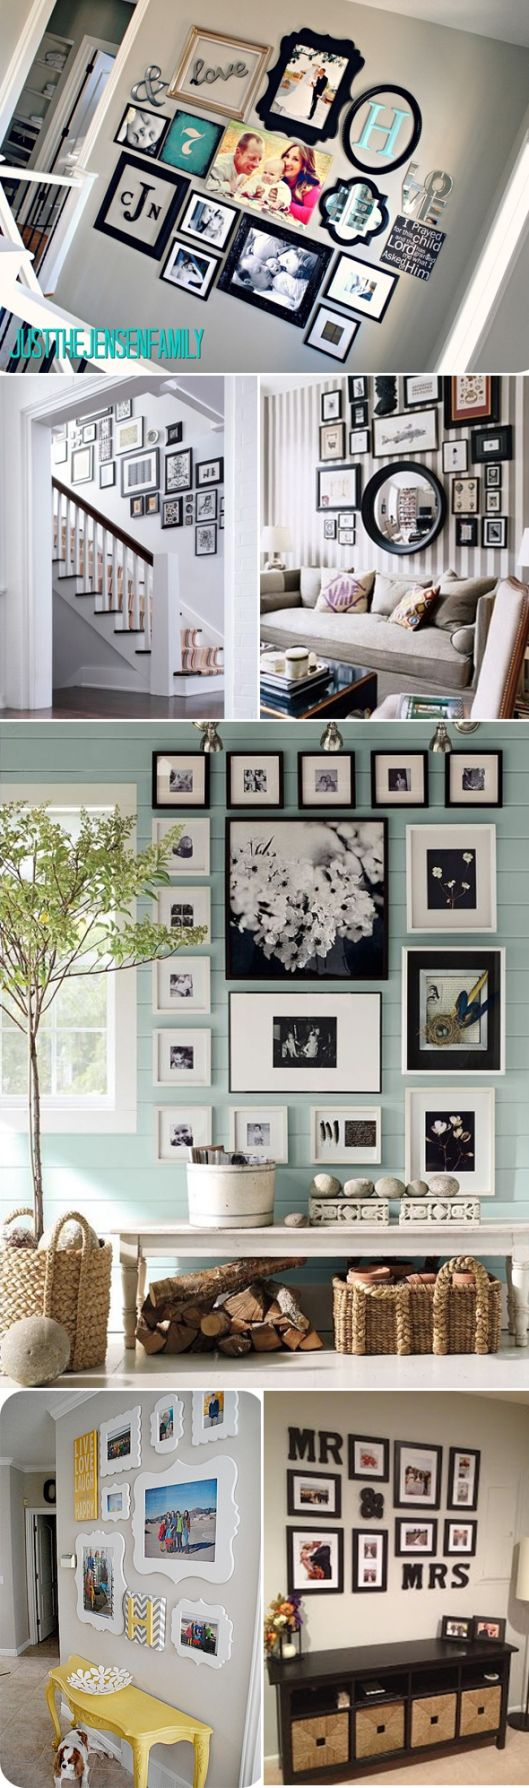 Frames On The Wall Decor Www Lapartiediva Br